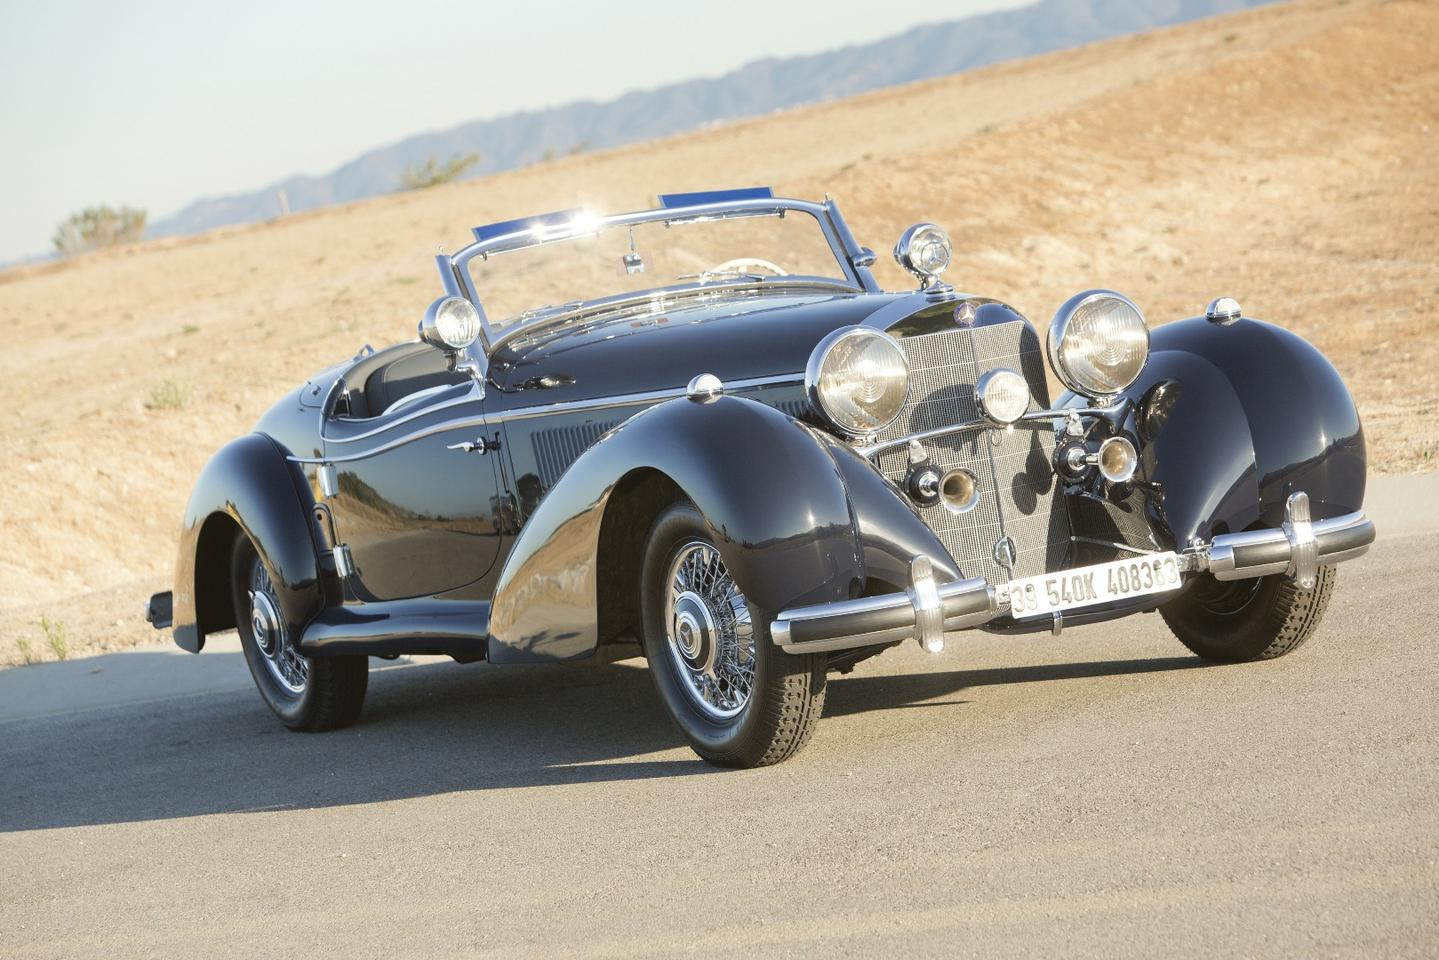 Only 25 540 K Special Roadsters were made and very few have survived. This car is quite possibly the last one built, and boasts a fully unique, owner-commissioned design, built by the Mercedes-Benz factory's Sindelfingen works with features that elegantly bridge the gap between 1930s elegance and 1950s streamlining. The elite collector car industry will be closely monitoring the price it fetches on January 20.